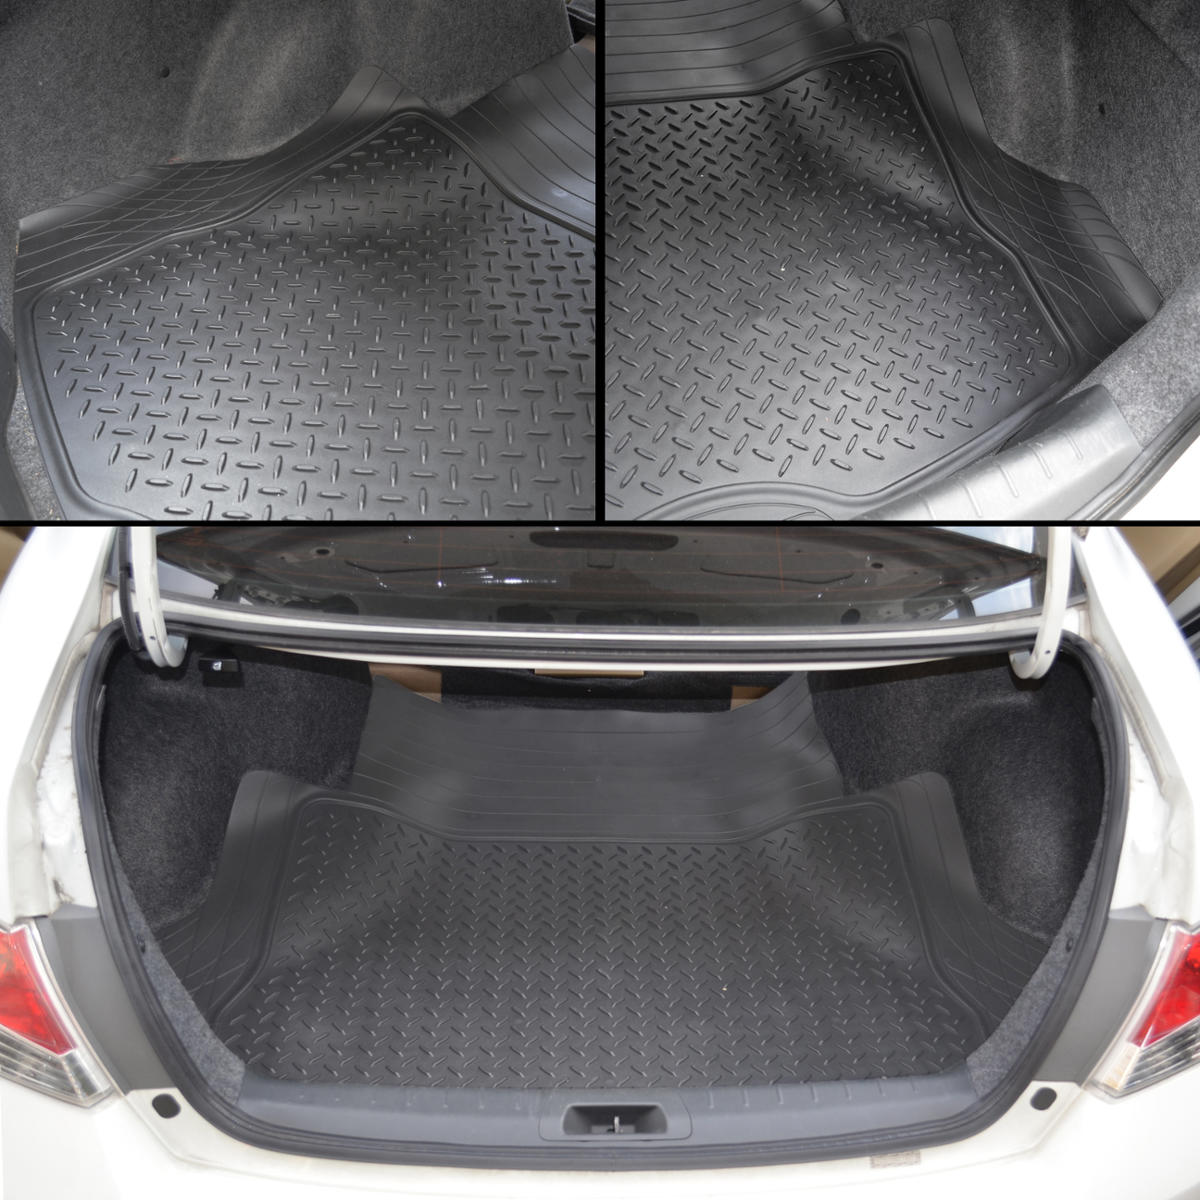 odor free cargo trunk liner mat for car van suvs trimmable rubber tough gray ebay. Black Bedroom Furniture Sets. Home Design Ideas